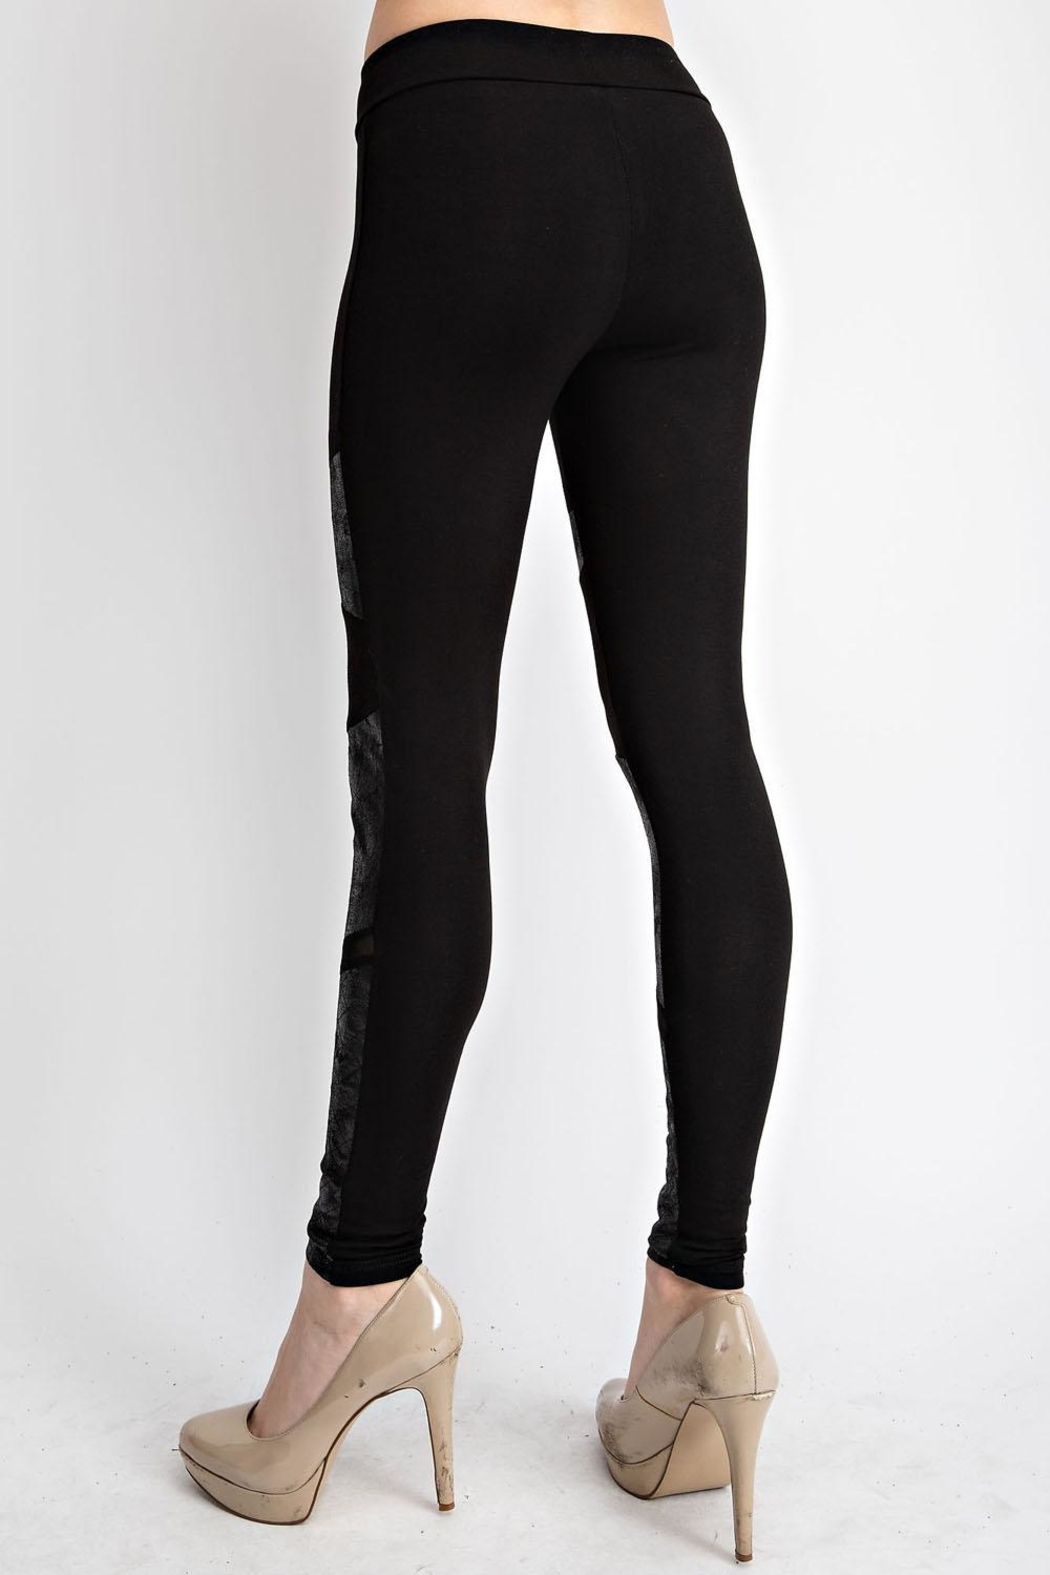 Vocal Apparel Faux Leather Inlet Leggings - Back Cropped Image